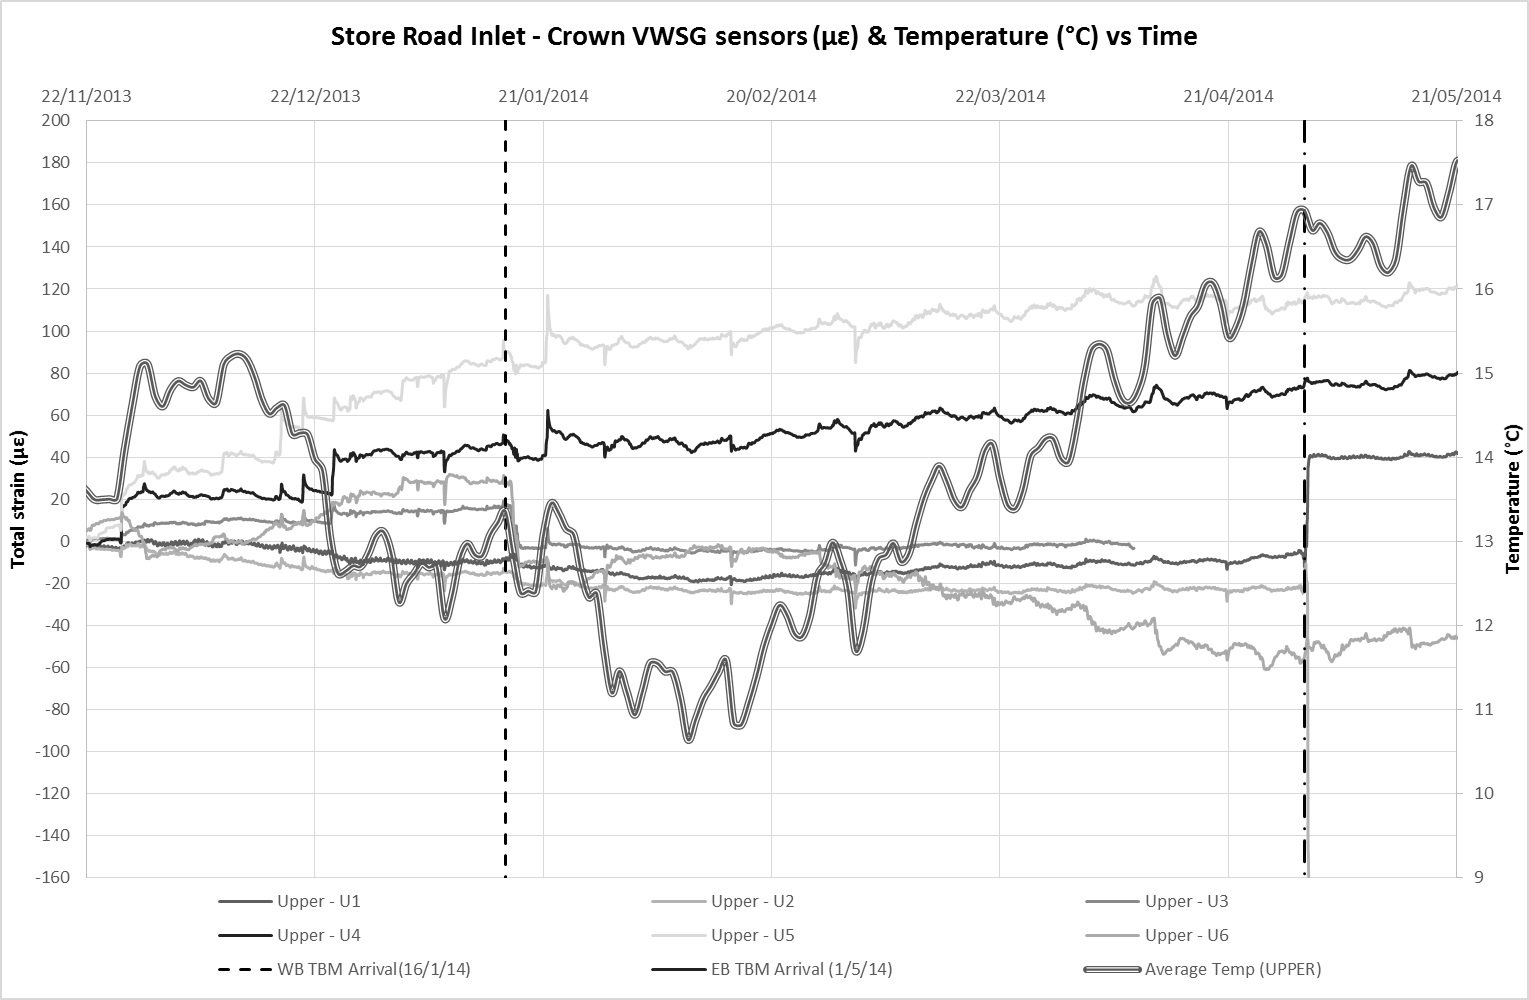 Figure 11a - VWSG with average temperature data at crown level against time